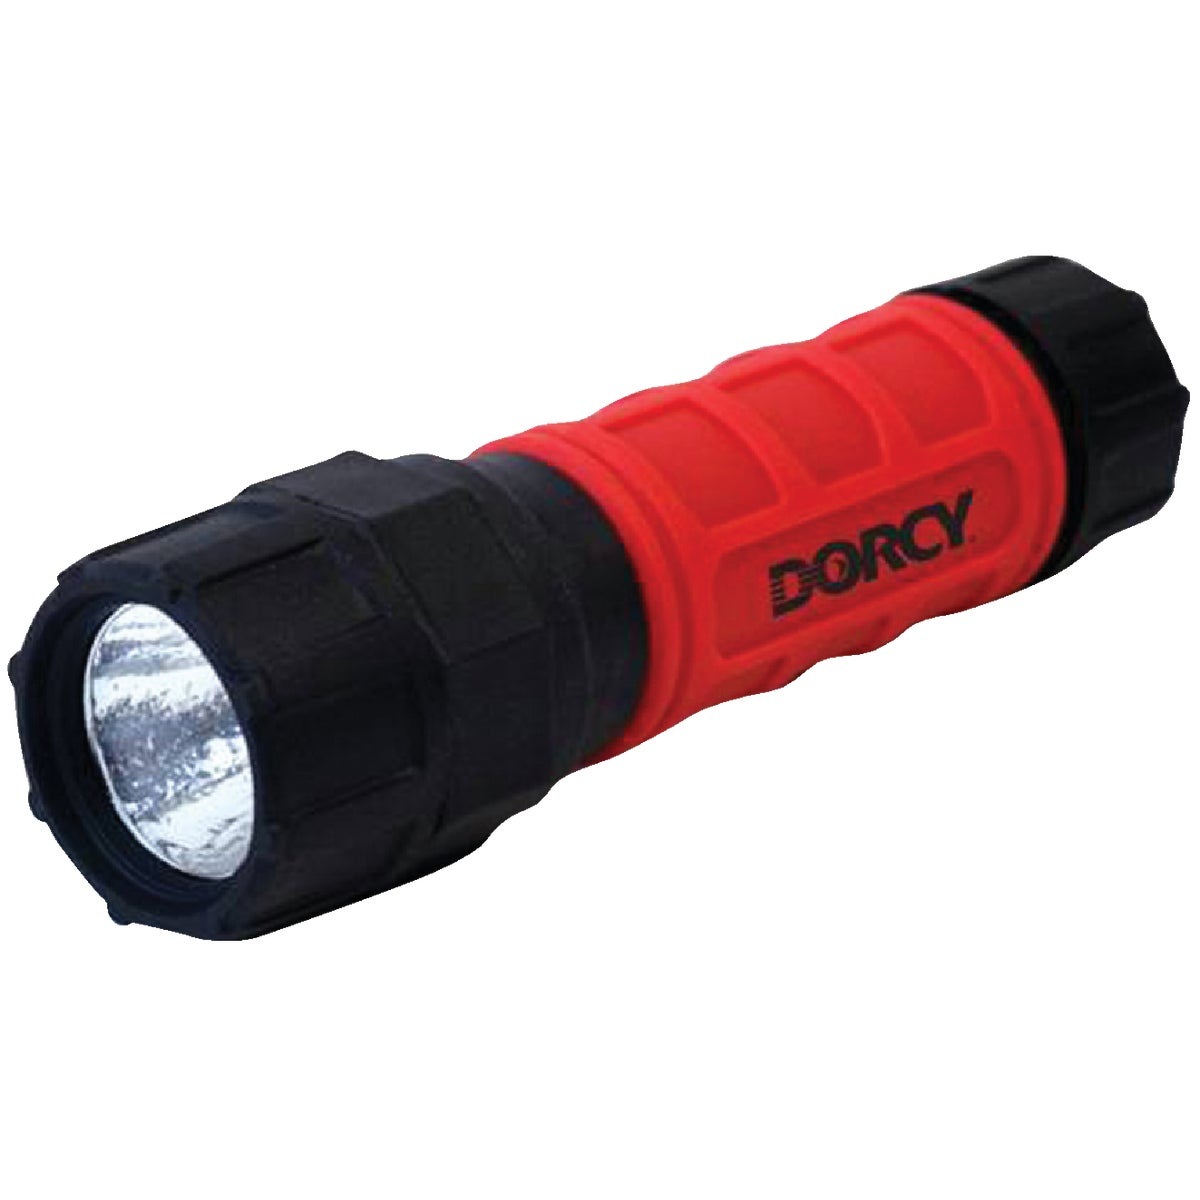 140 LUM UNBRK FLASHLIGHT - 41-4200 by Dorcy International